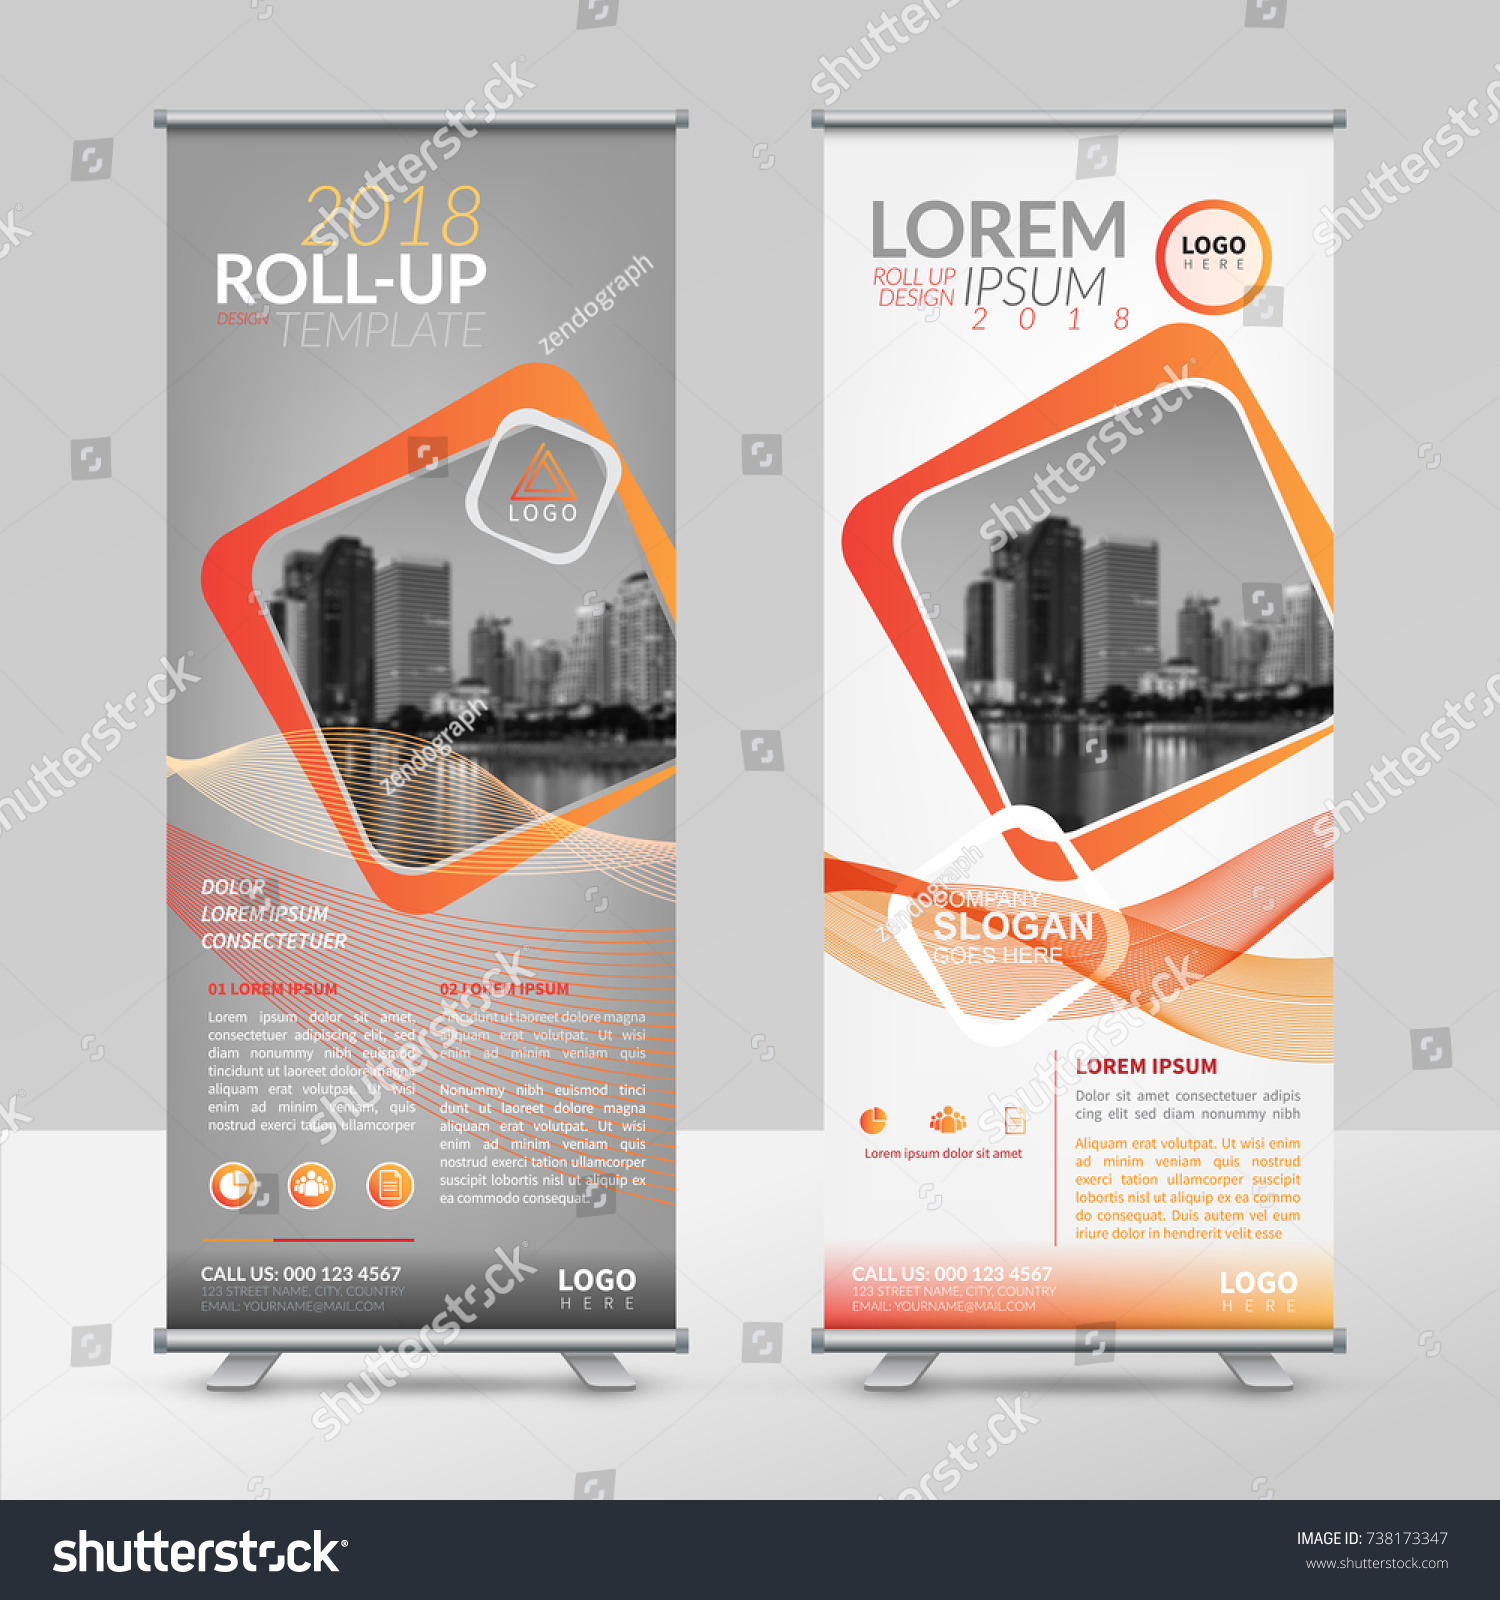 Business Roll Design Template Xstand Vertical Stock Vector (Royalty ...